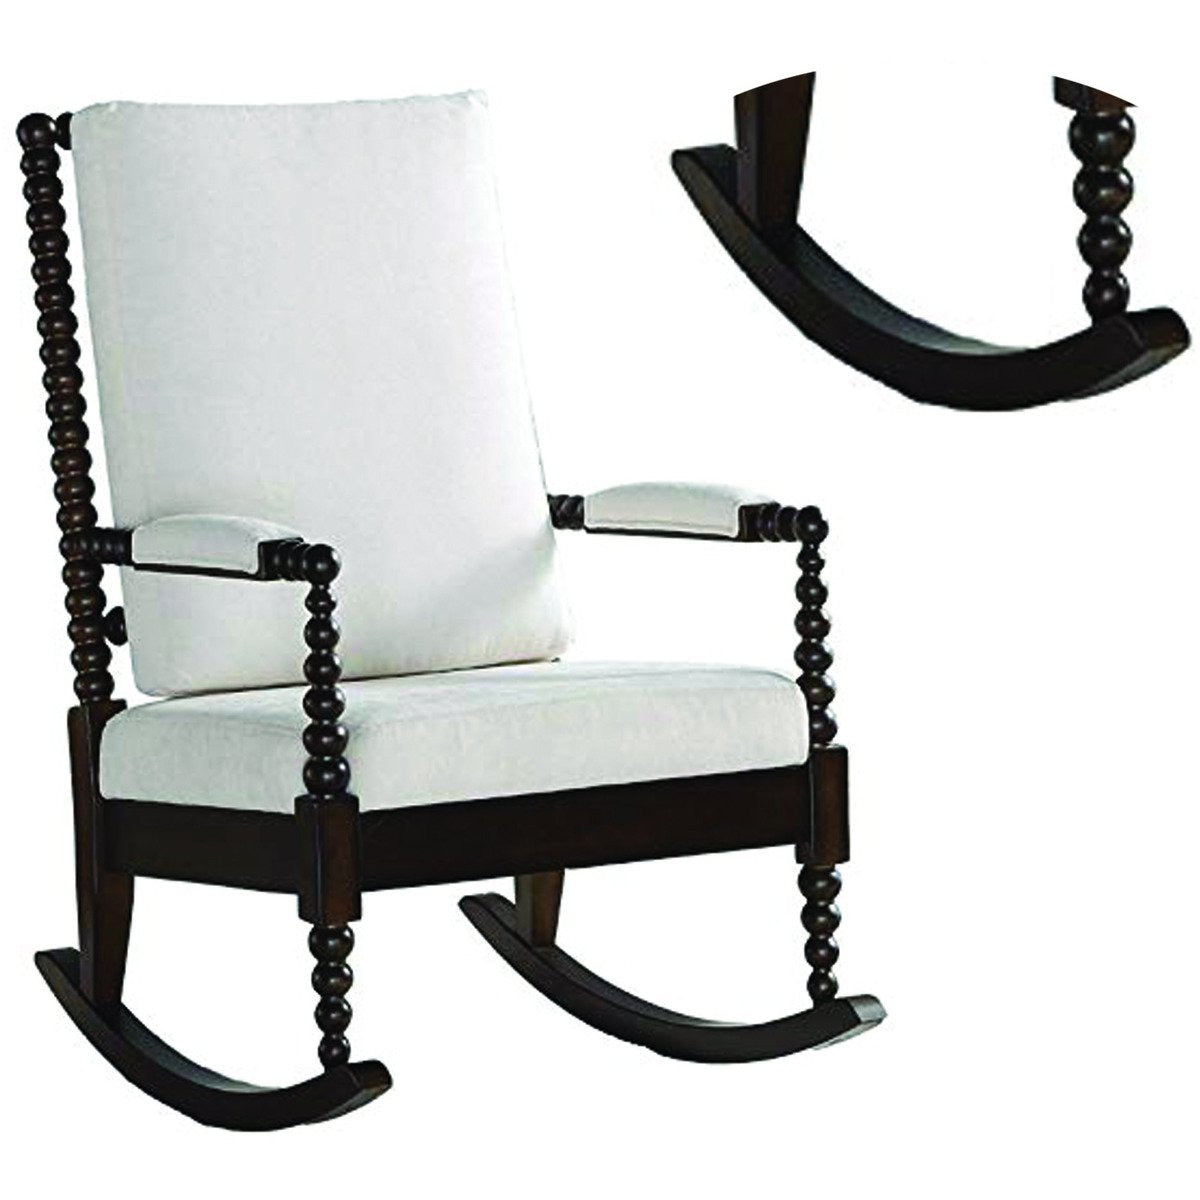 Accent Chairs - Wooden Rocking Chair With Fabric Upholstered Cushions, White And Brown